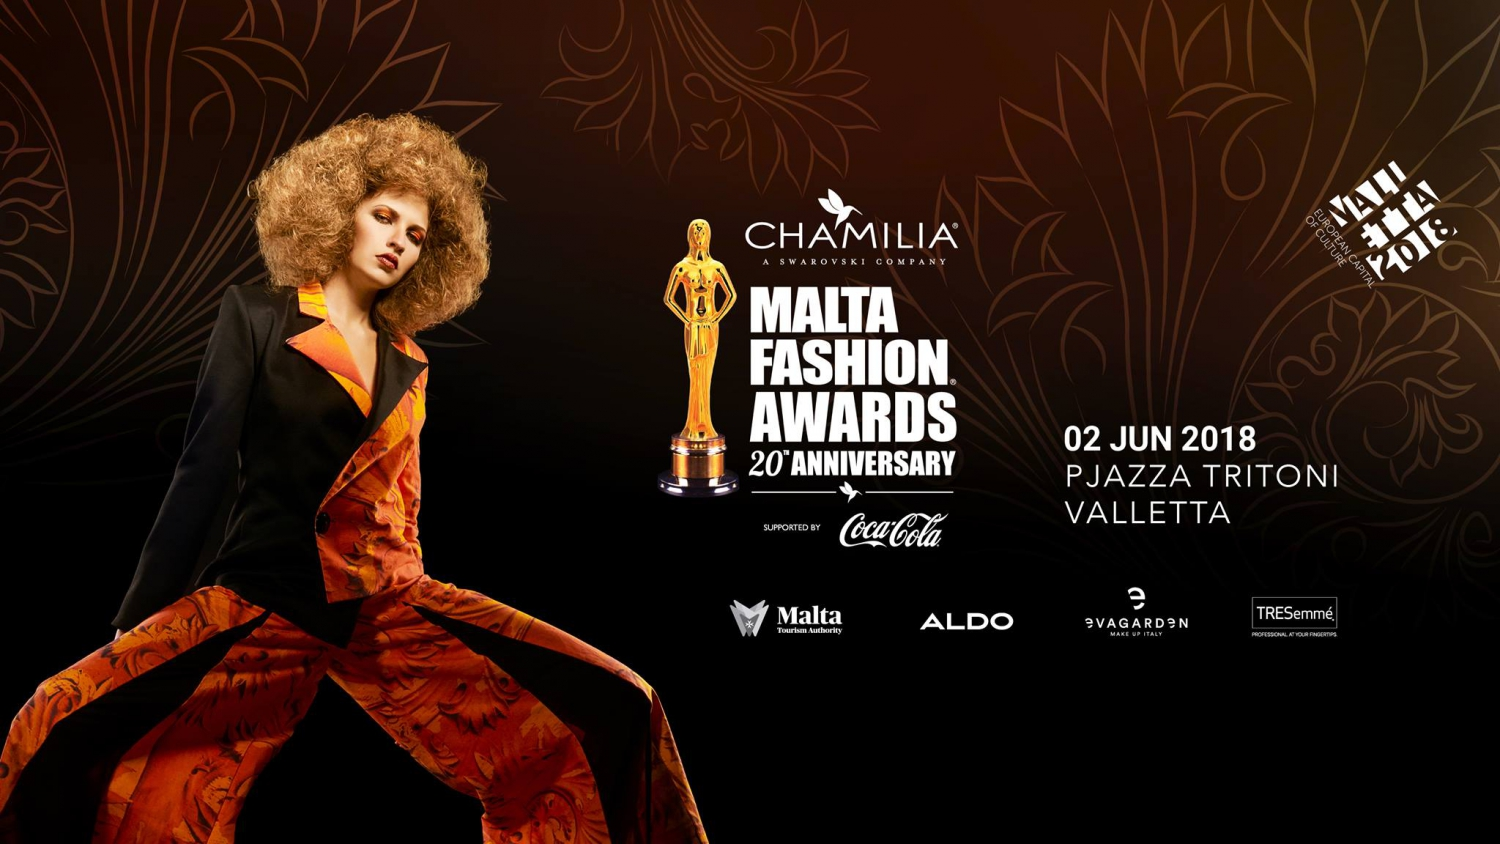 The Chamilia Malta Fashion Awards 2018